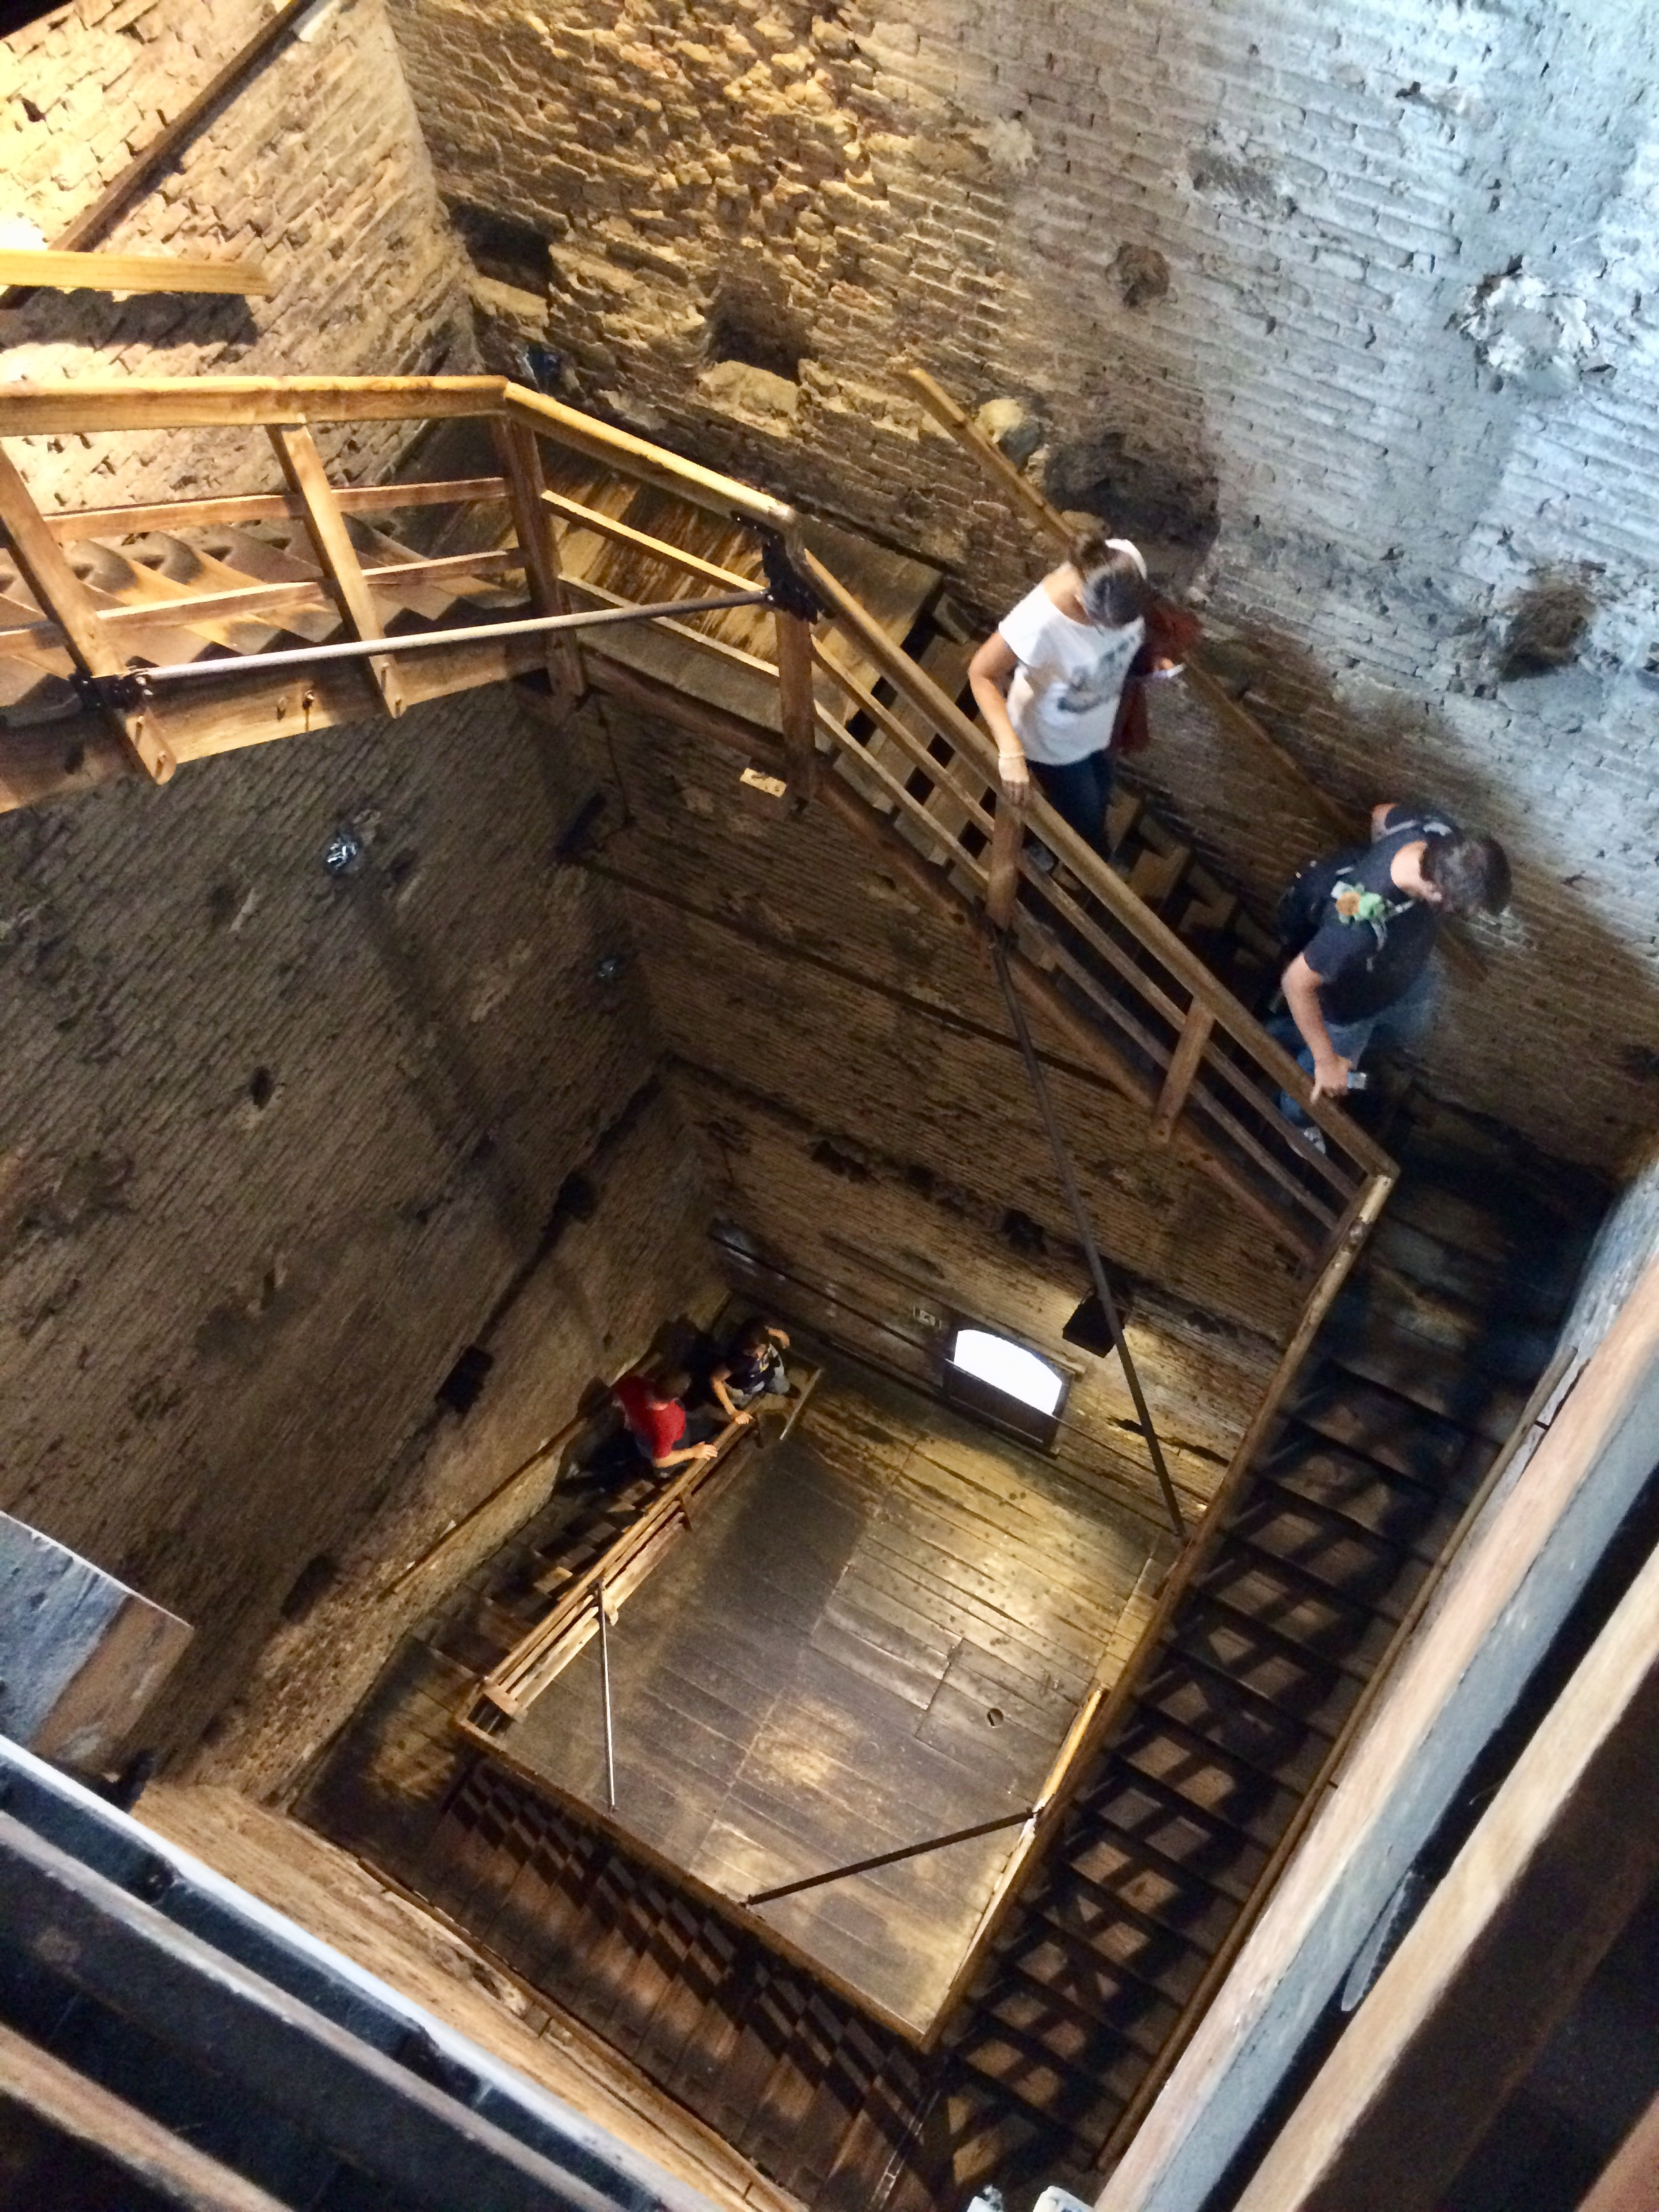 498 stairs to the top